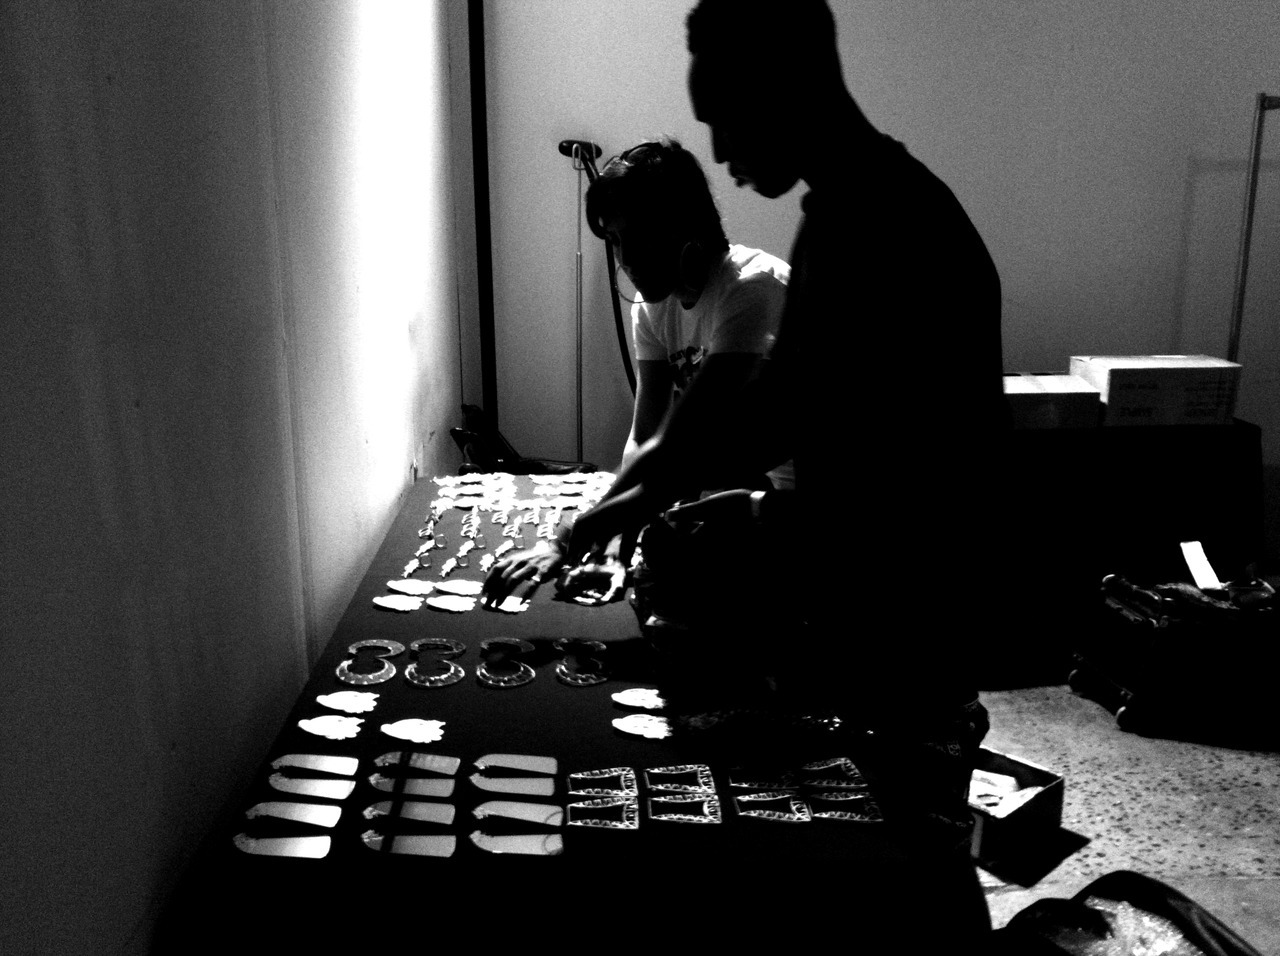 M.E. behind the scenes at the Jeremy Scott Arab Spring SS13 show, NYFW.